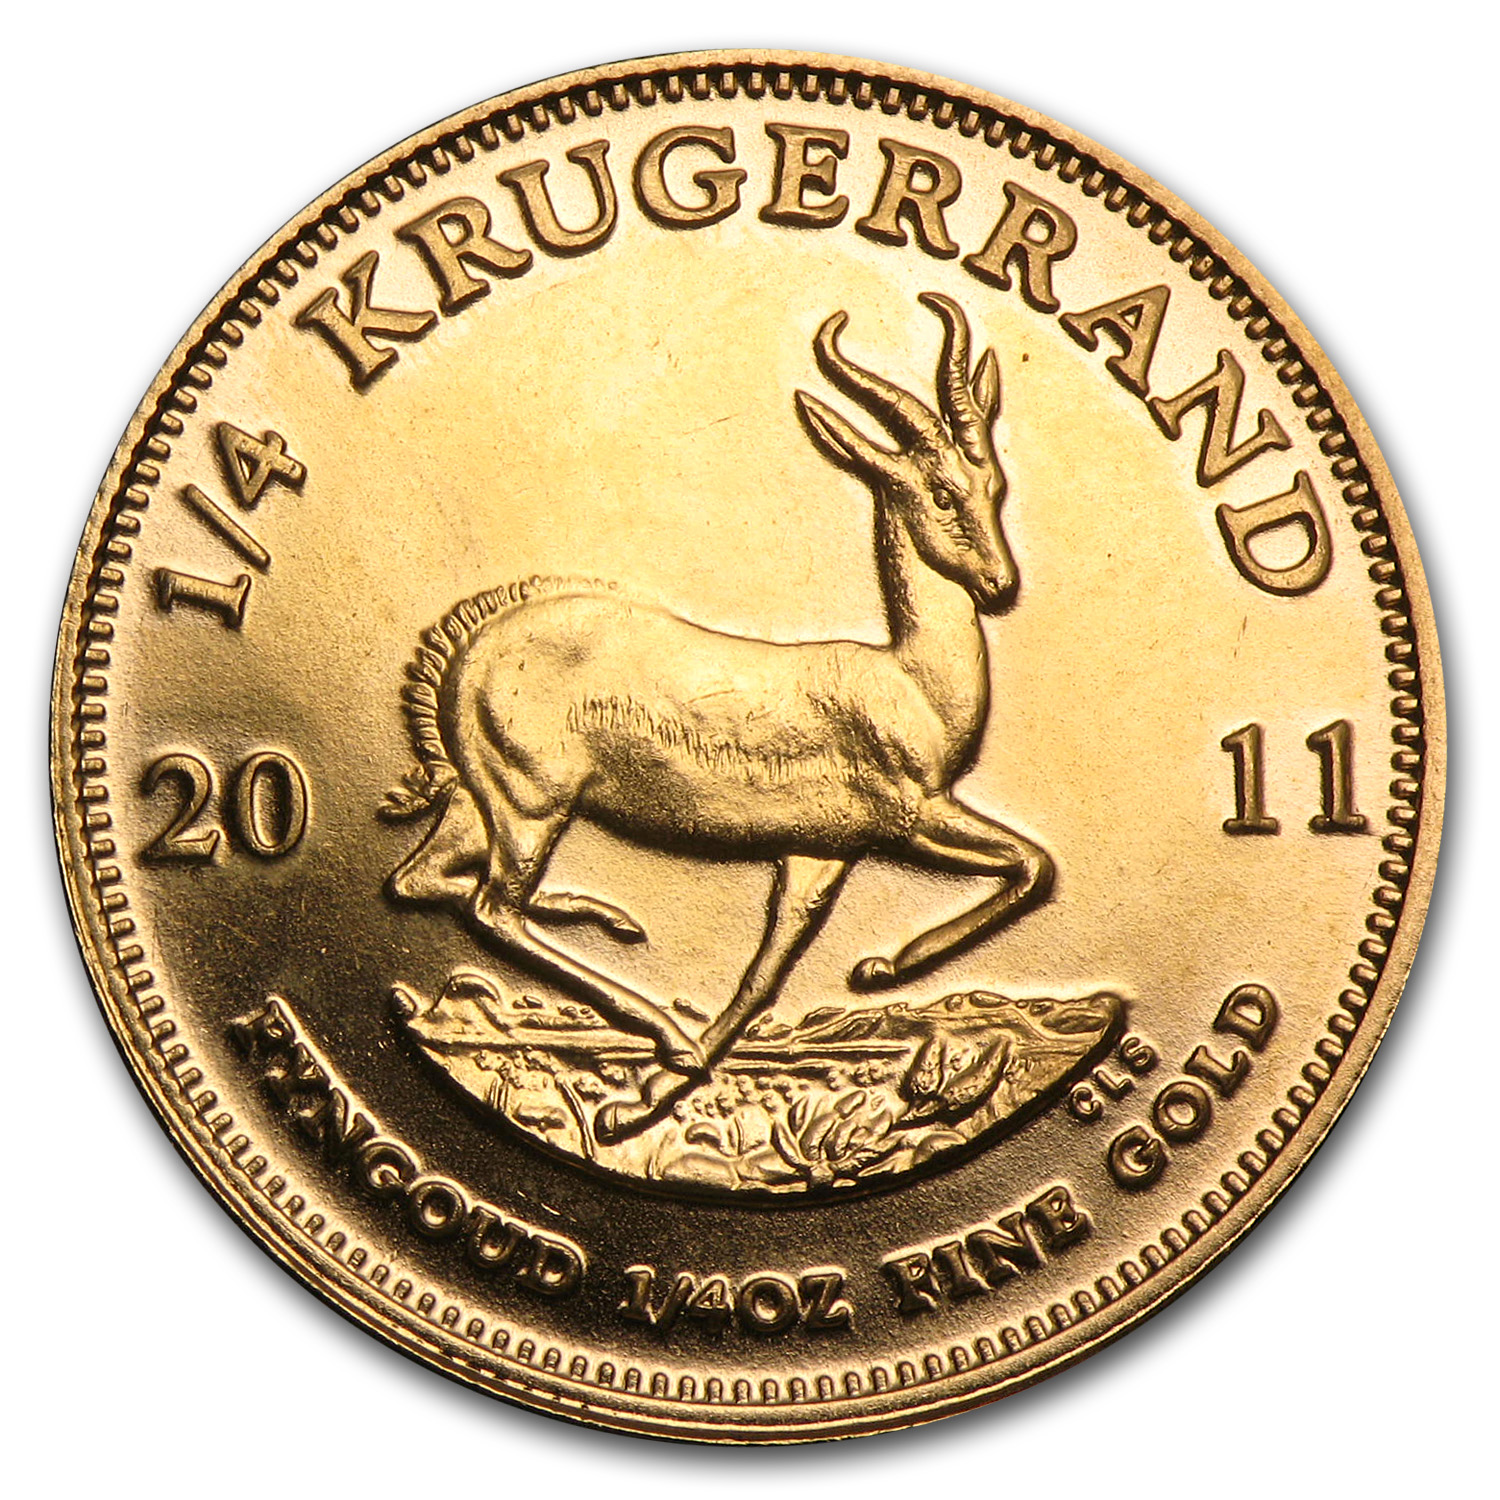 2011 South Africa 1/4 oz Gold Krugerrand